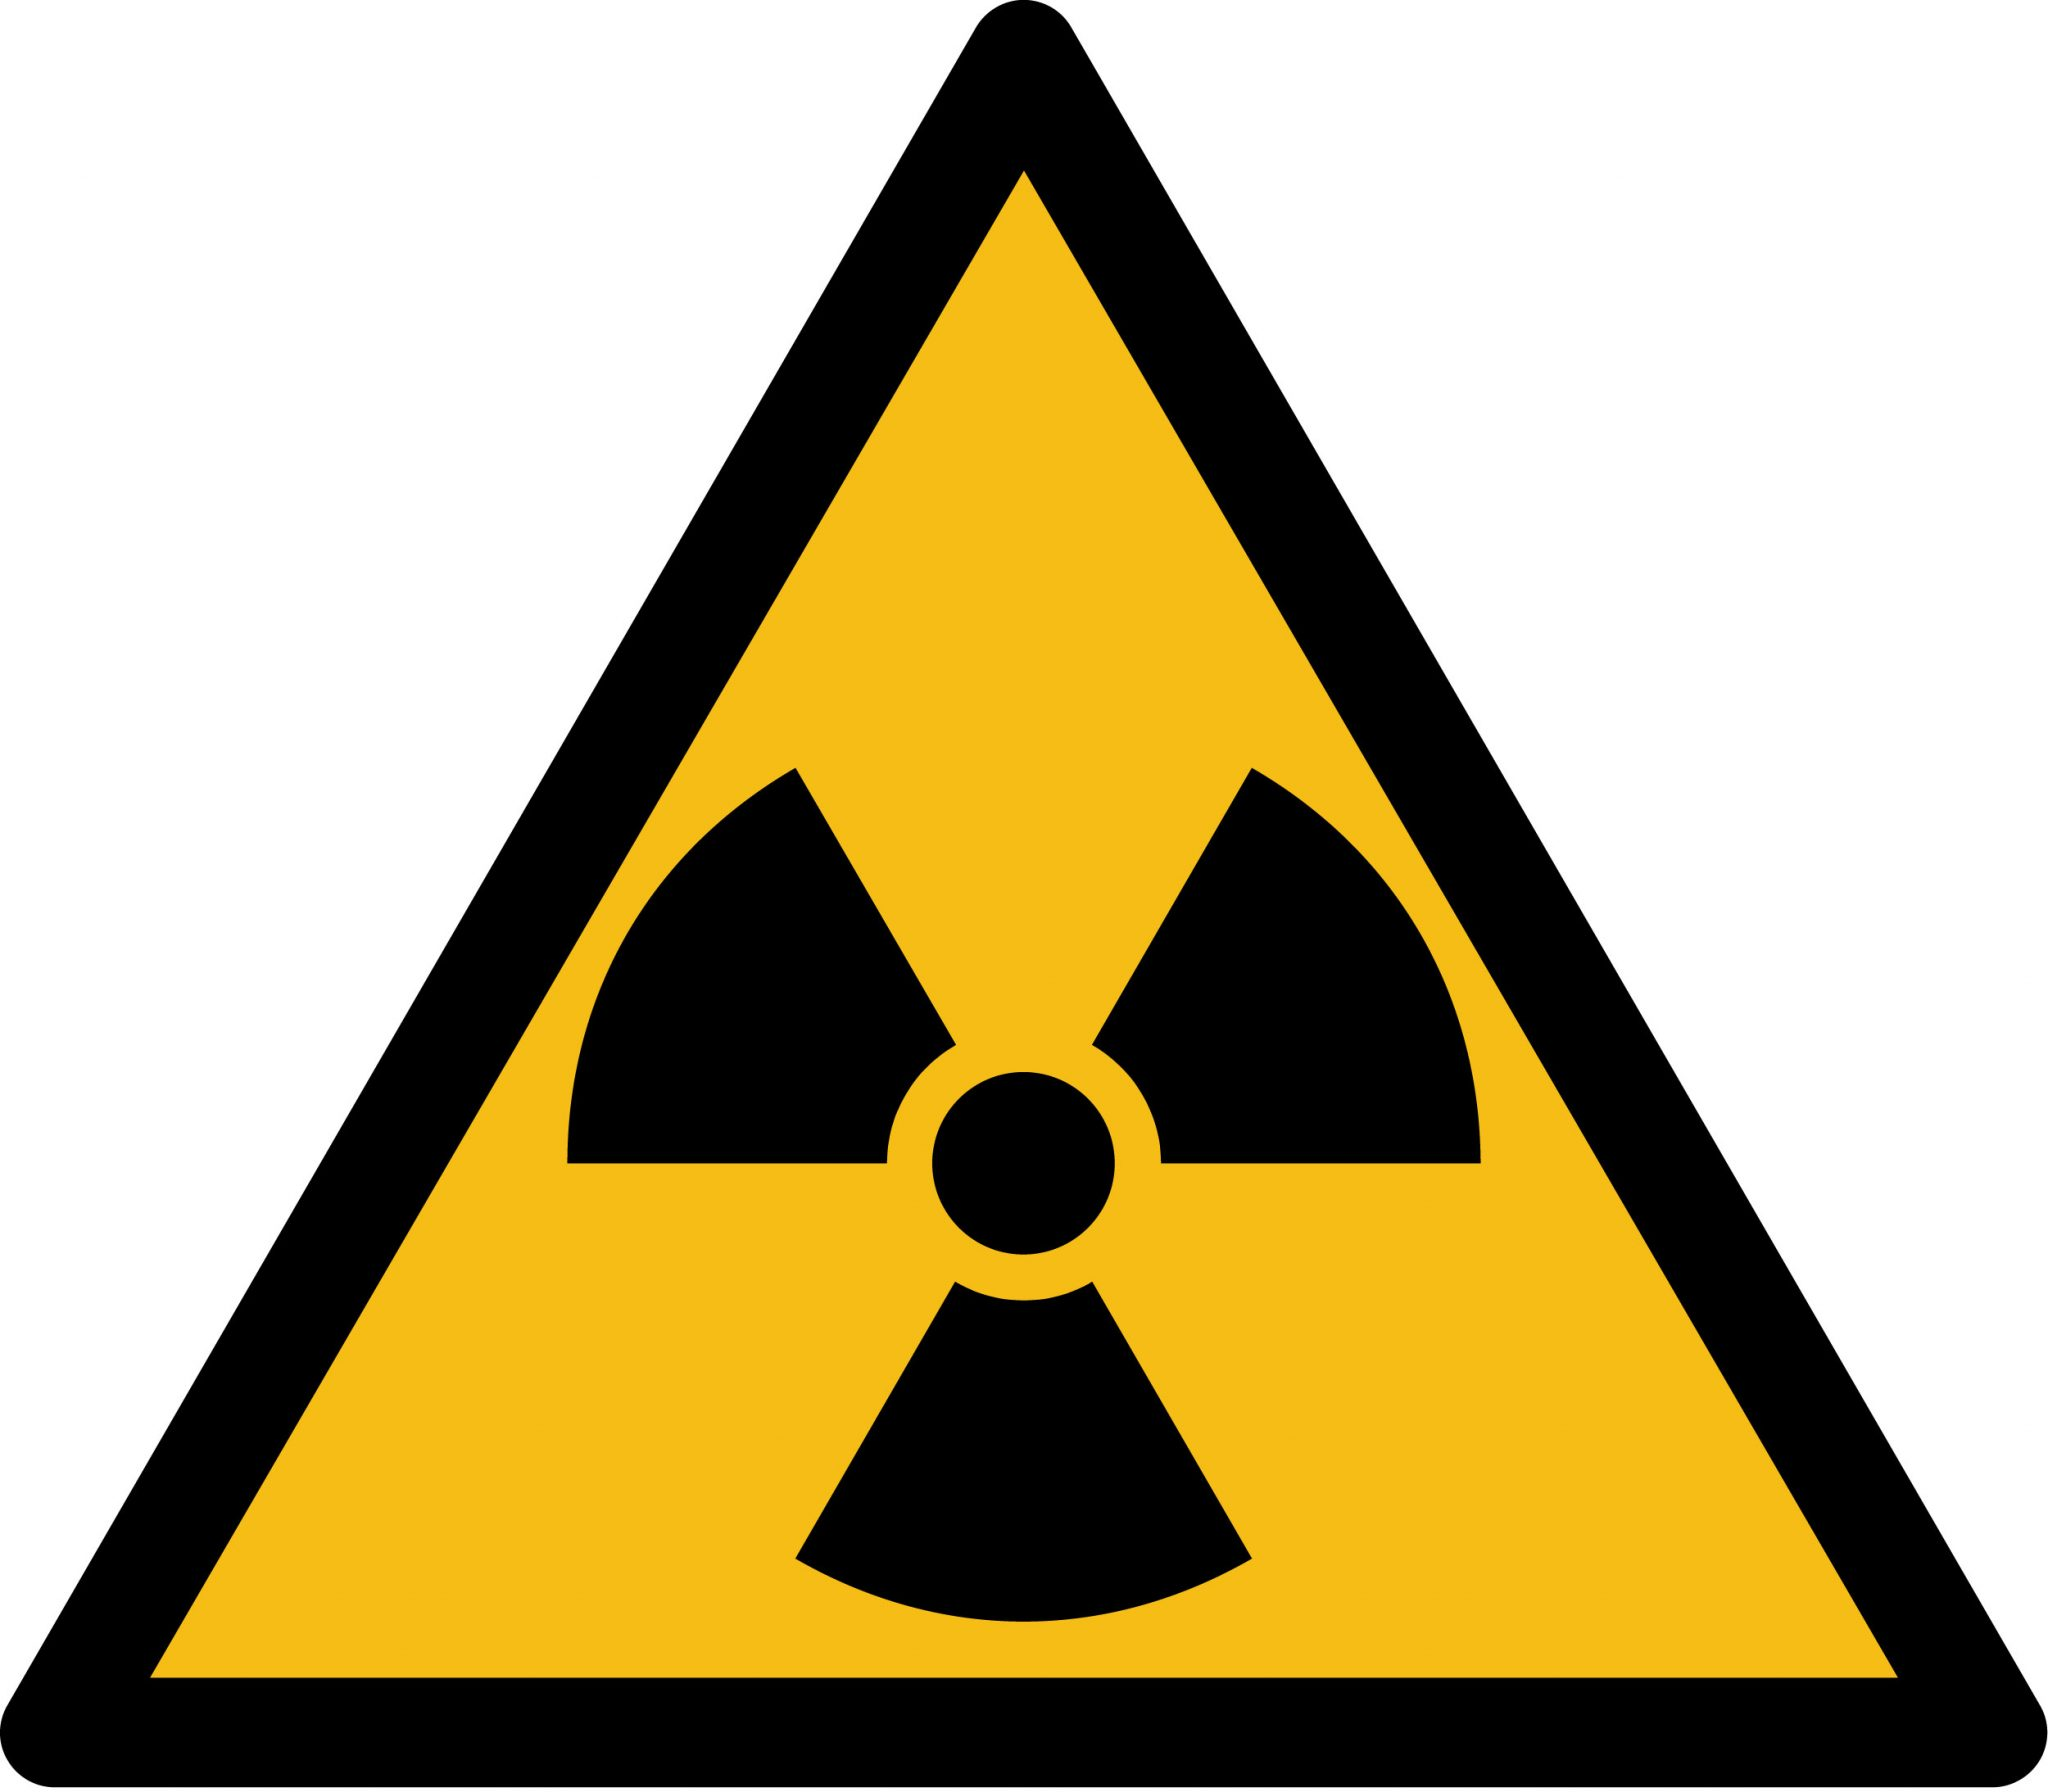 What is radiation, and why is it potentially harmful?